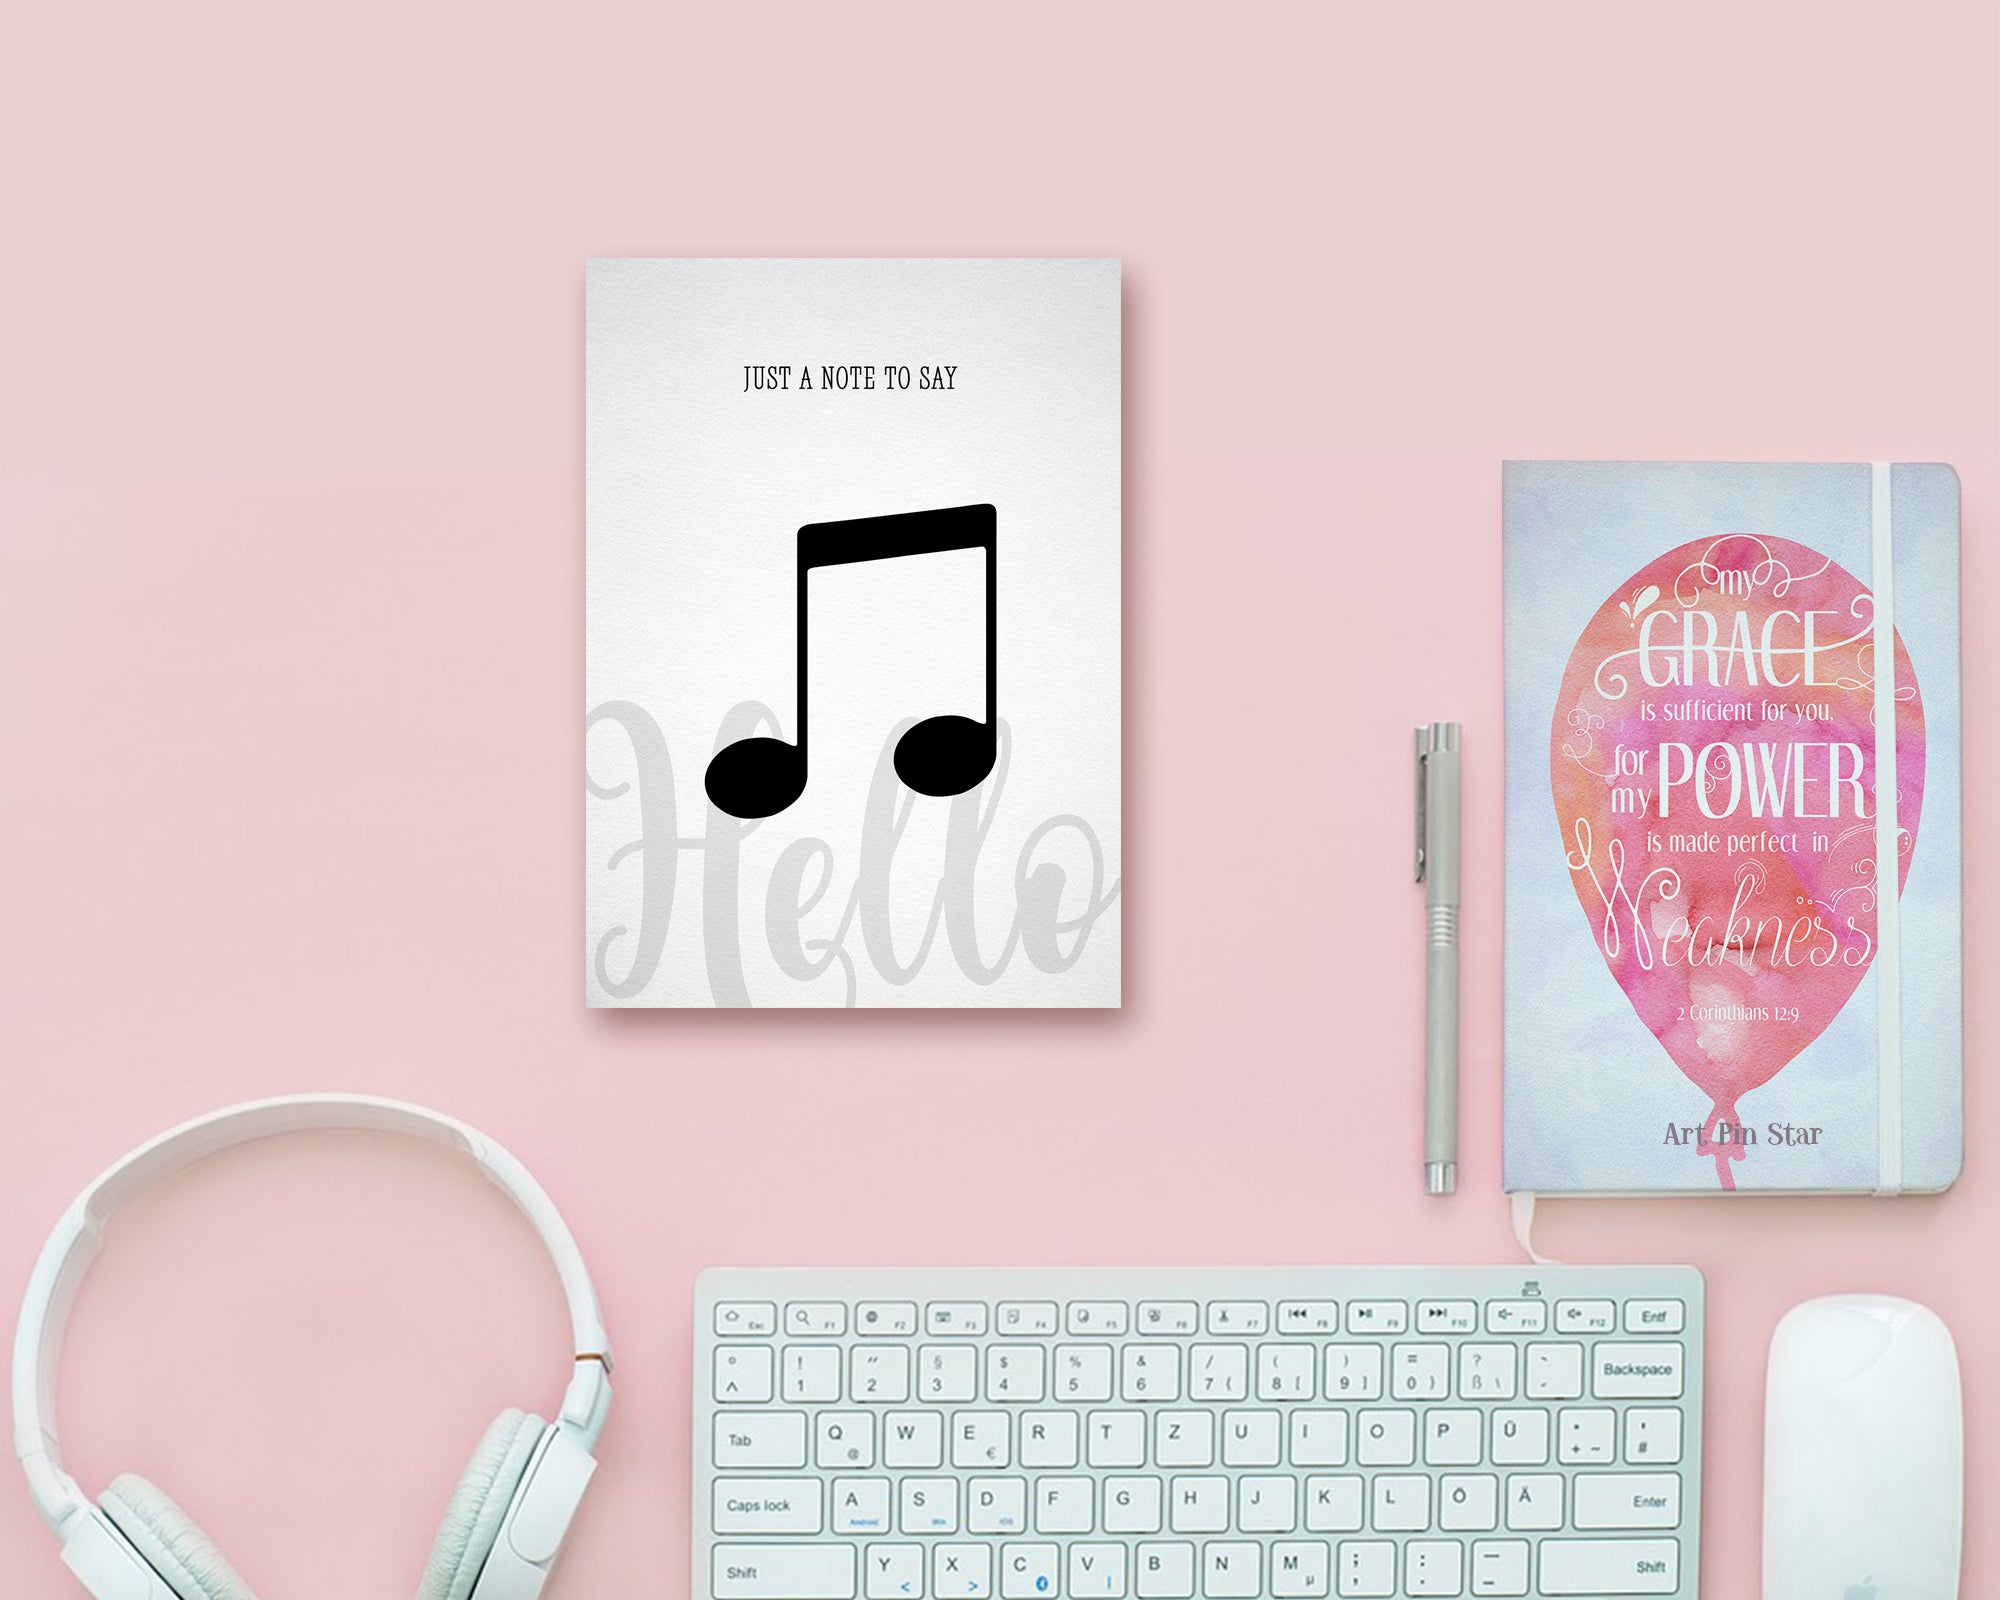 Just a note to say Hello Sixteenth Note Sixteenth Note Music Gift Ideas Customizable Greeting Card